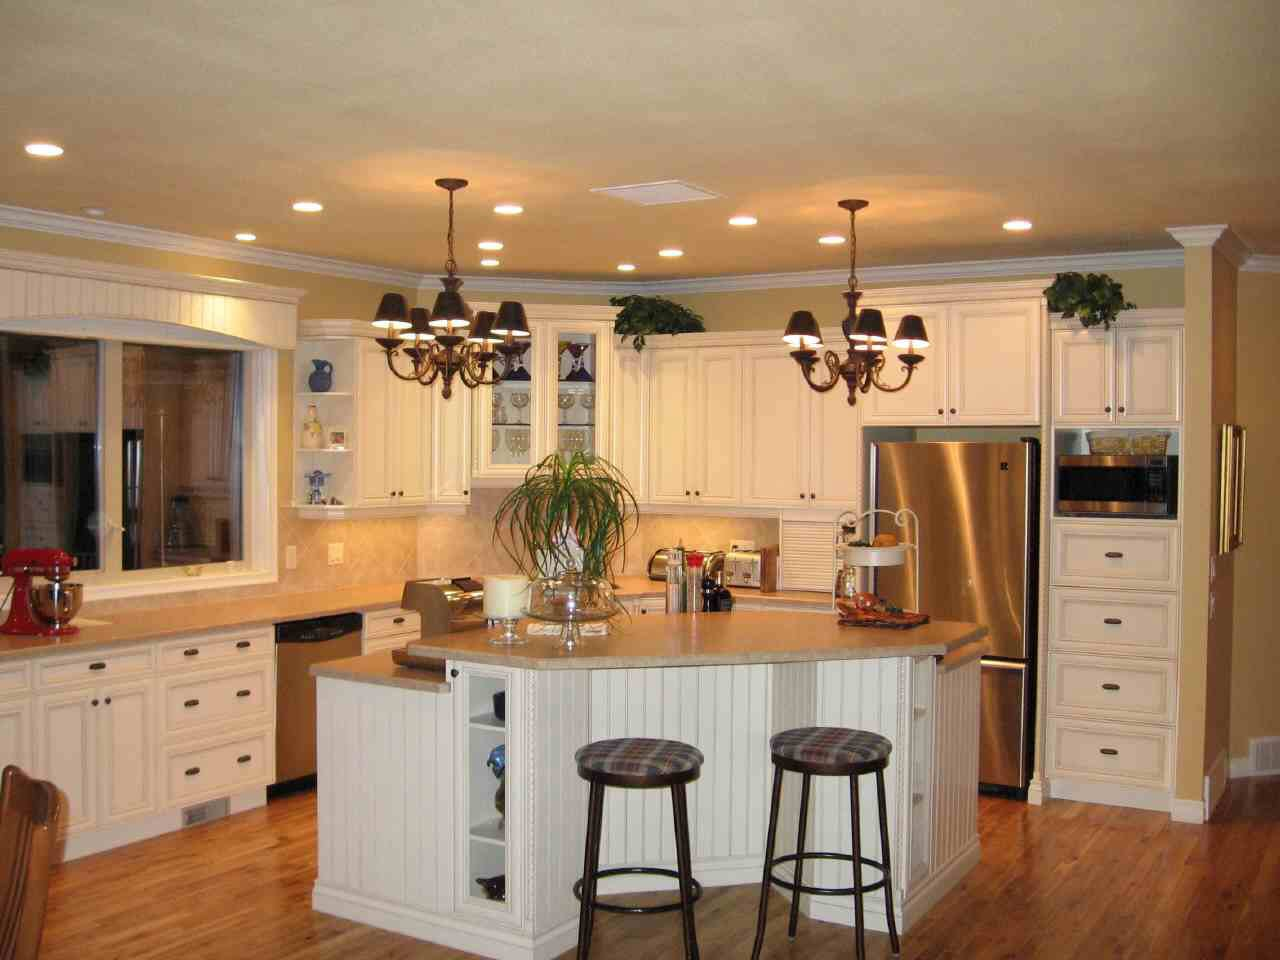 Stunning White Kitchen Design Ideas 1280 x 960 · 109 kB · jpeg